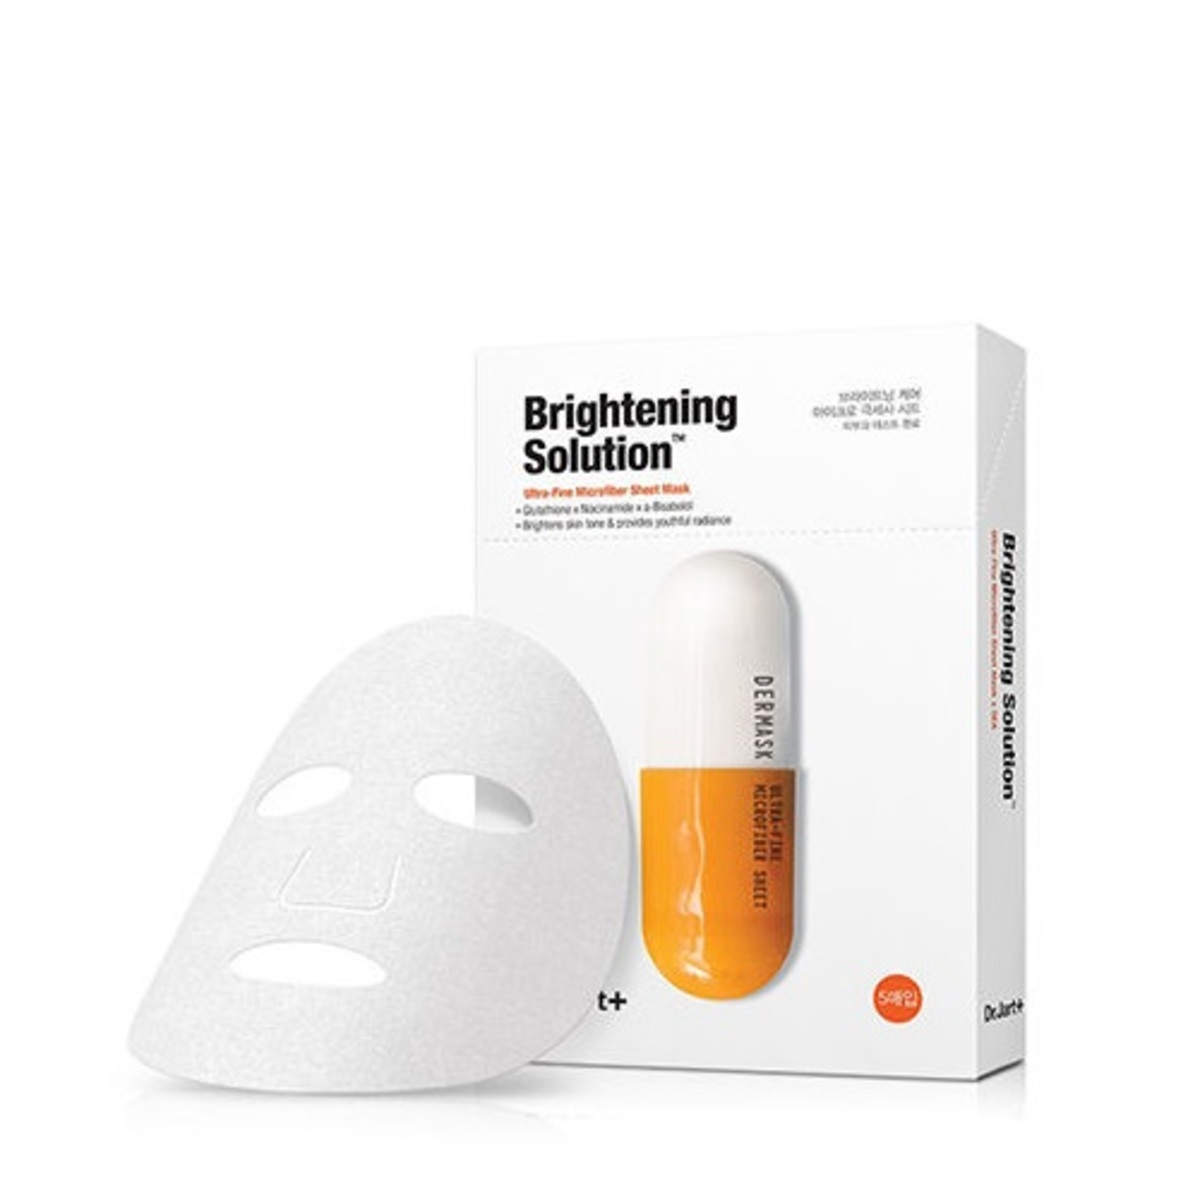 Micro Jet Brightening Solution Mask 5pcs [Parallel Import]